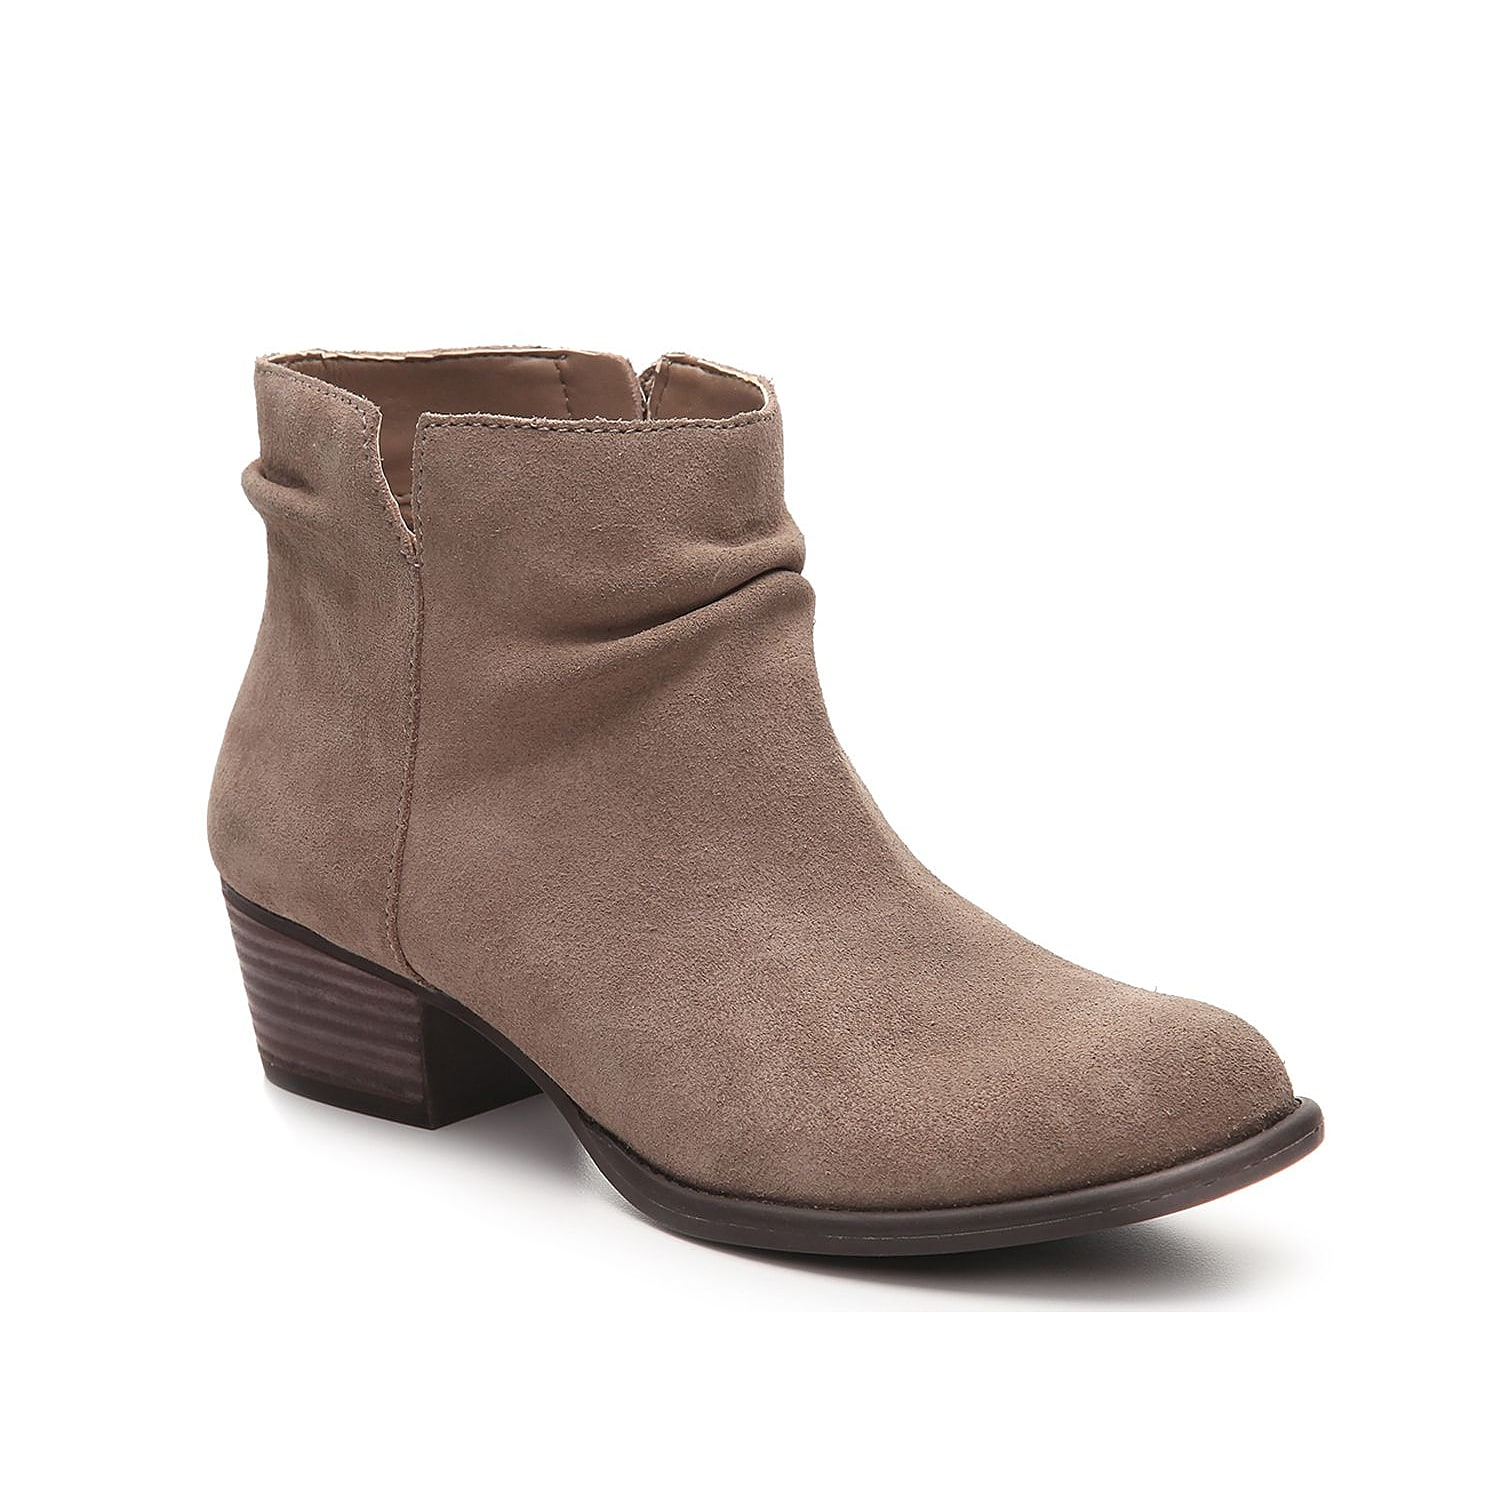 Jump start your wardrobe with the Jessica Simpson Dalisa booties. With a relaxed slouchy silhouette and a block heel, these suede ankle boots look great with jeans or patterned tights.